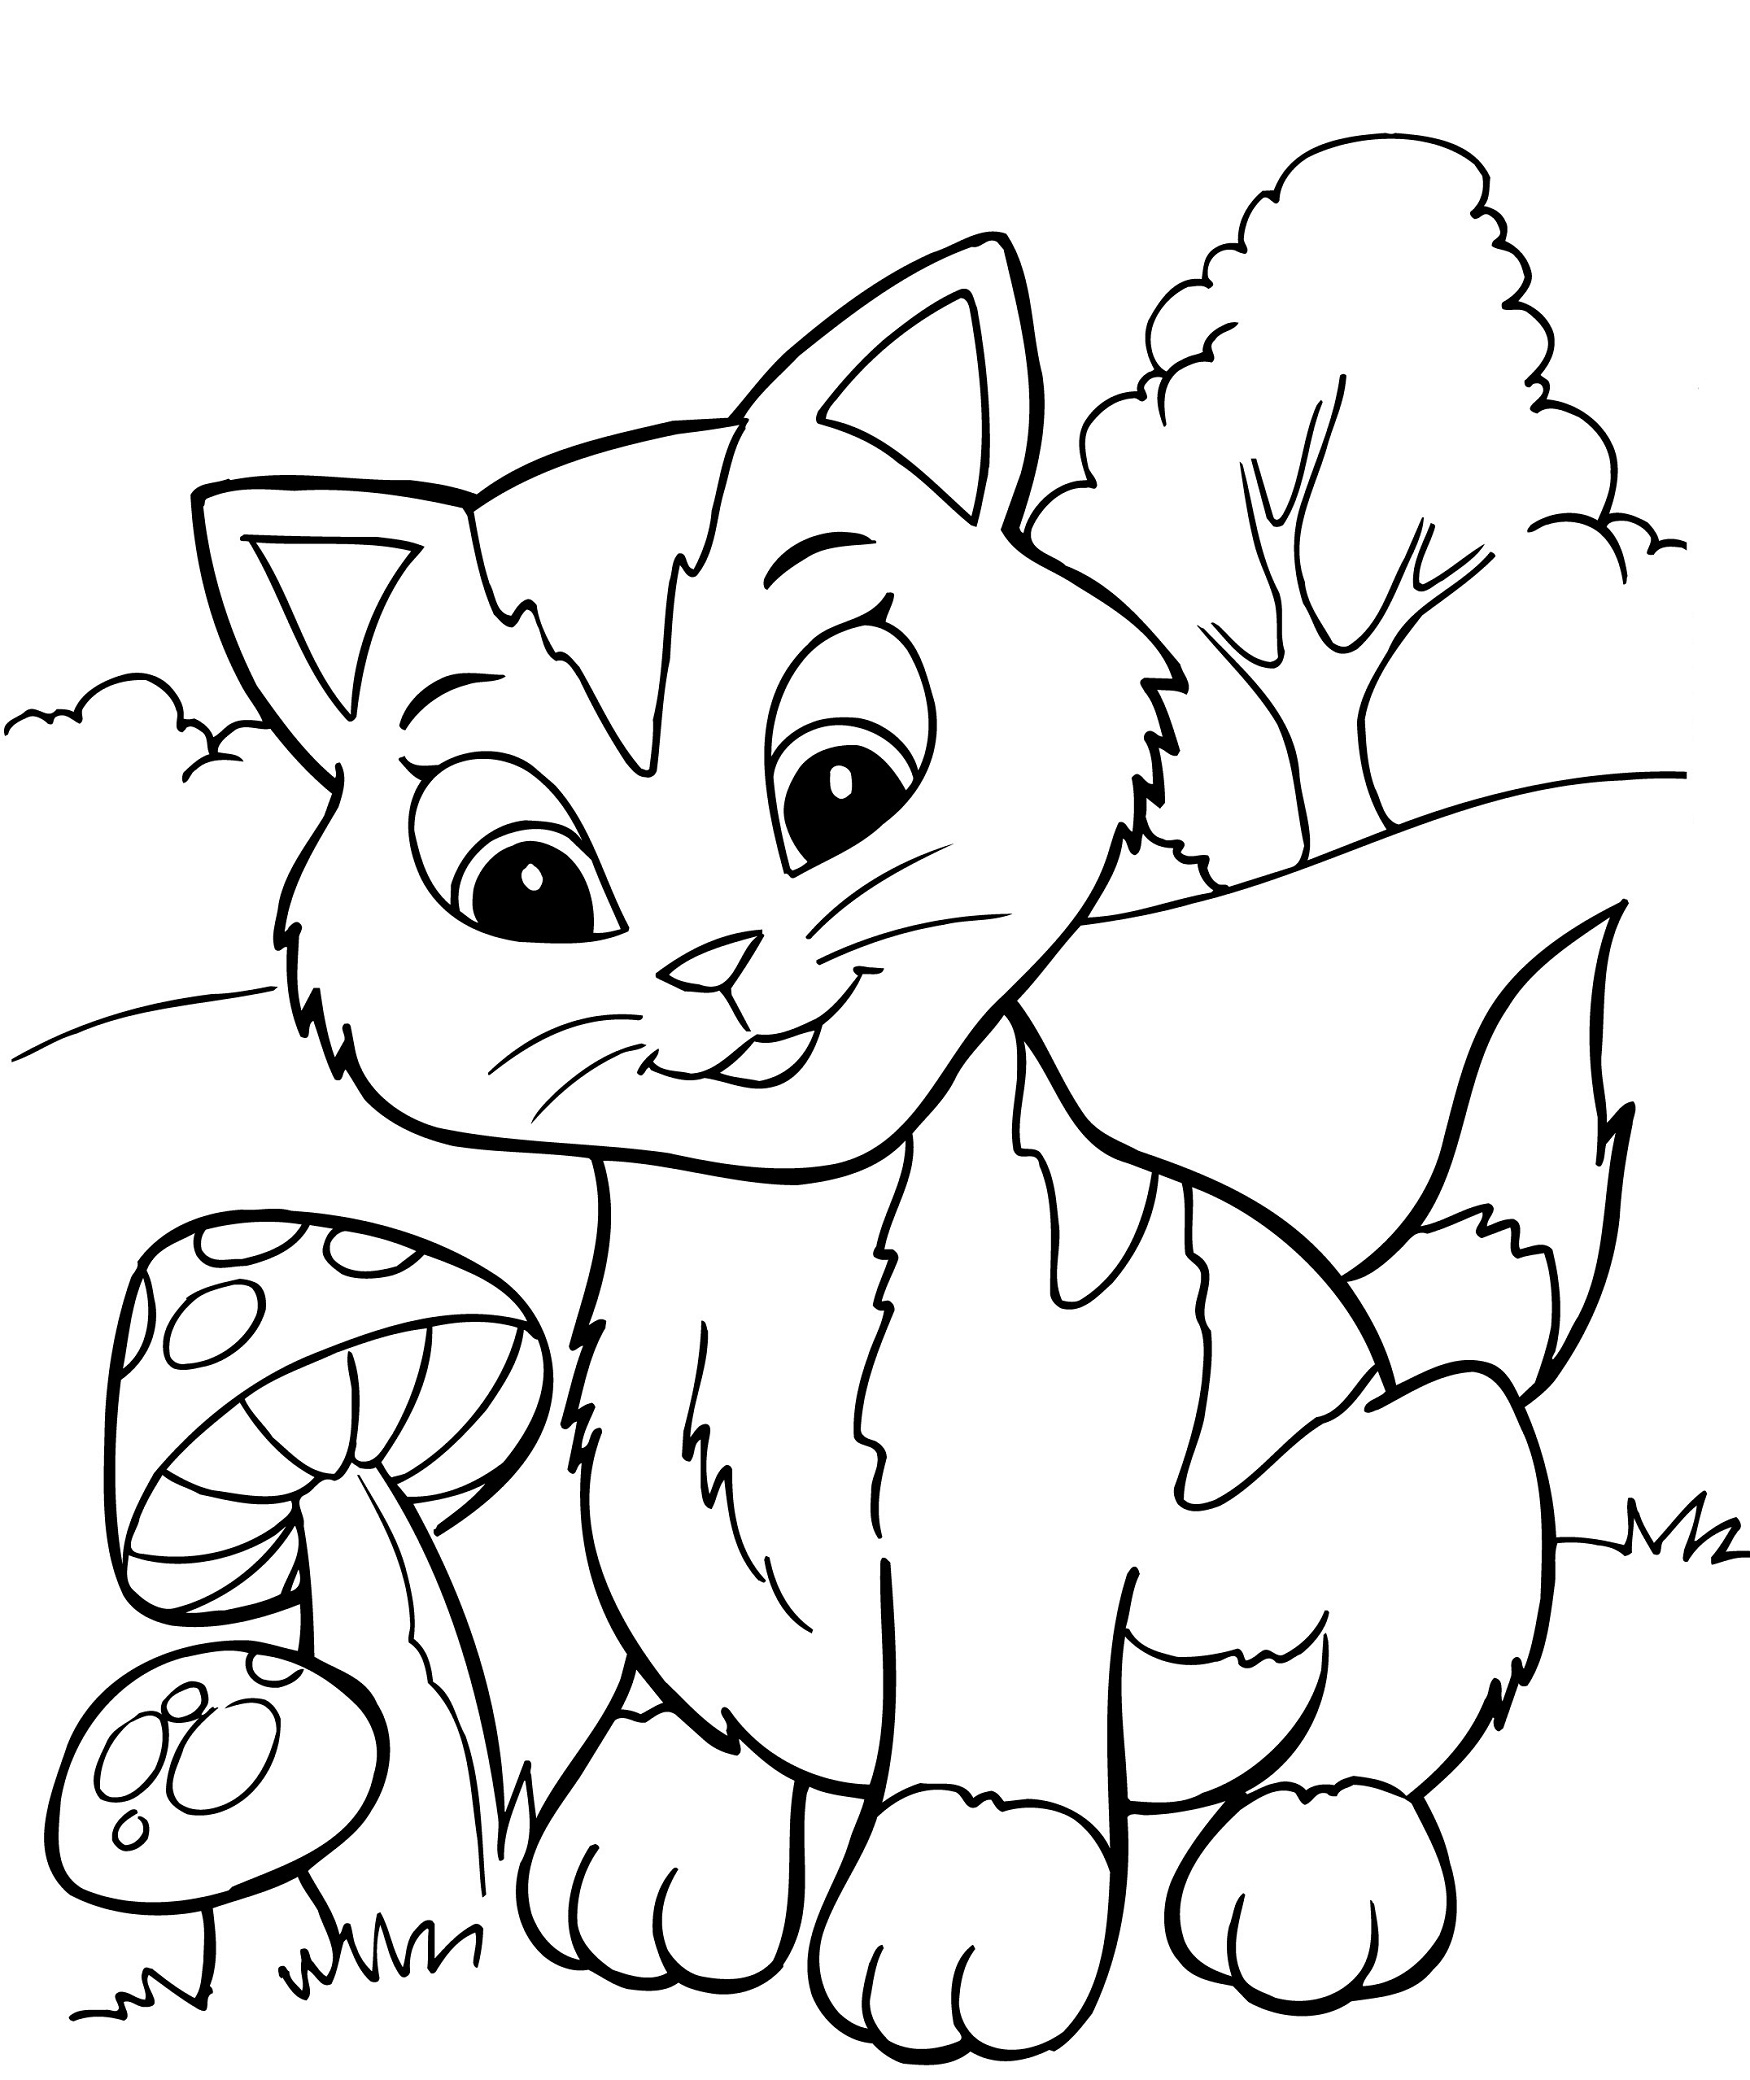 kittens coloring pages to print free printable kitten coloring pages for kids best to print kittens coloring pages